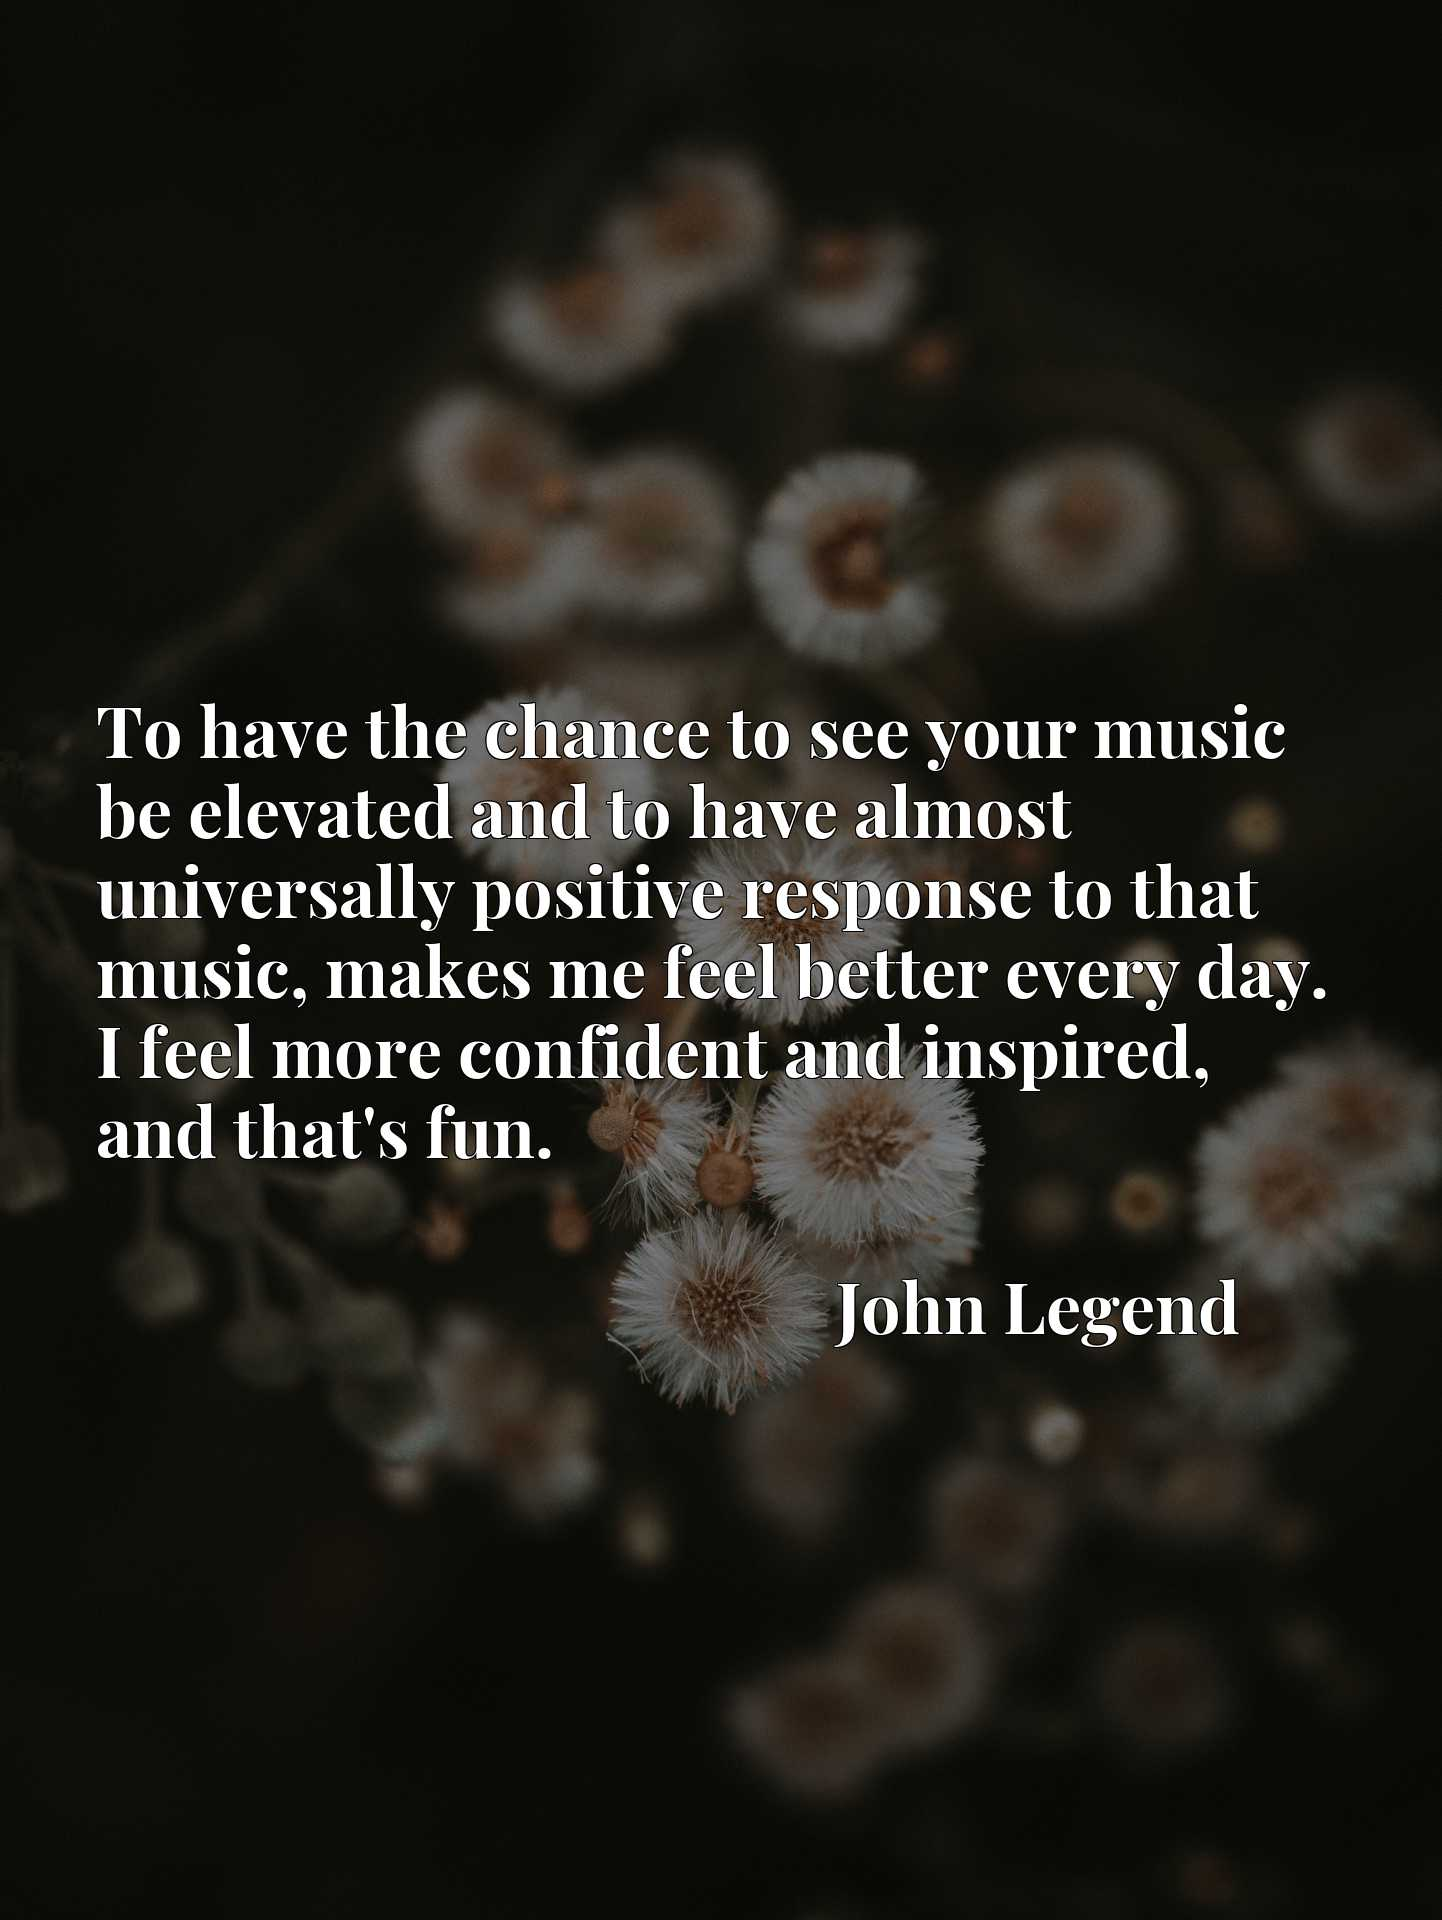 To have the chance to see your music be elevated and to have almost universally positive response to that music, makes me feel better every day. I feel more confident and inspired, and that's fun.